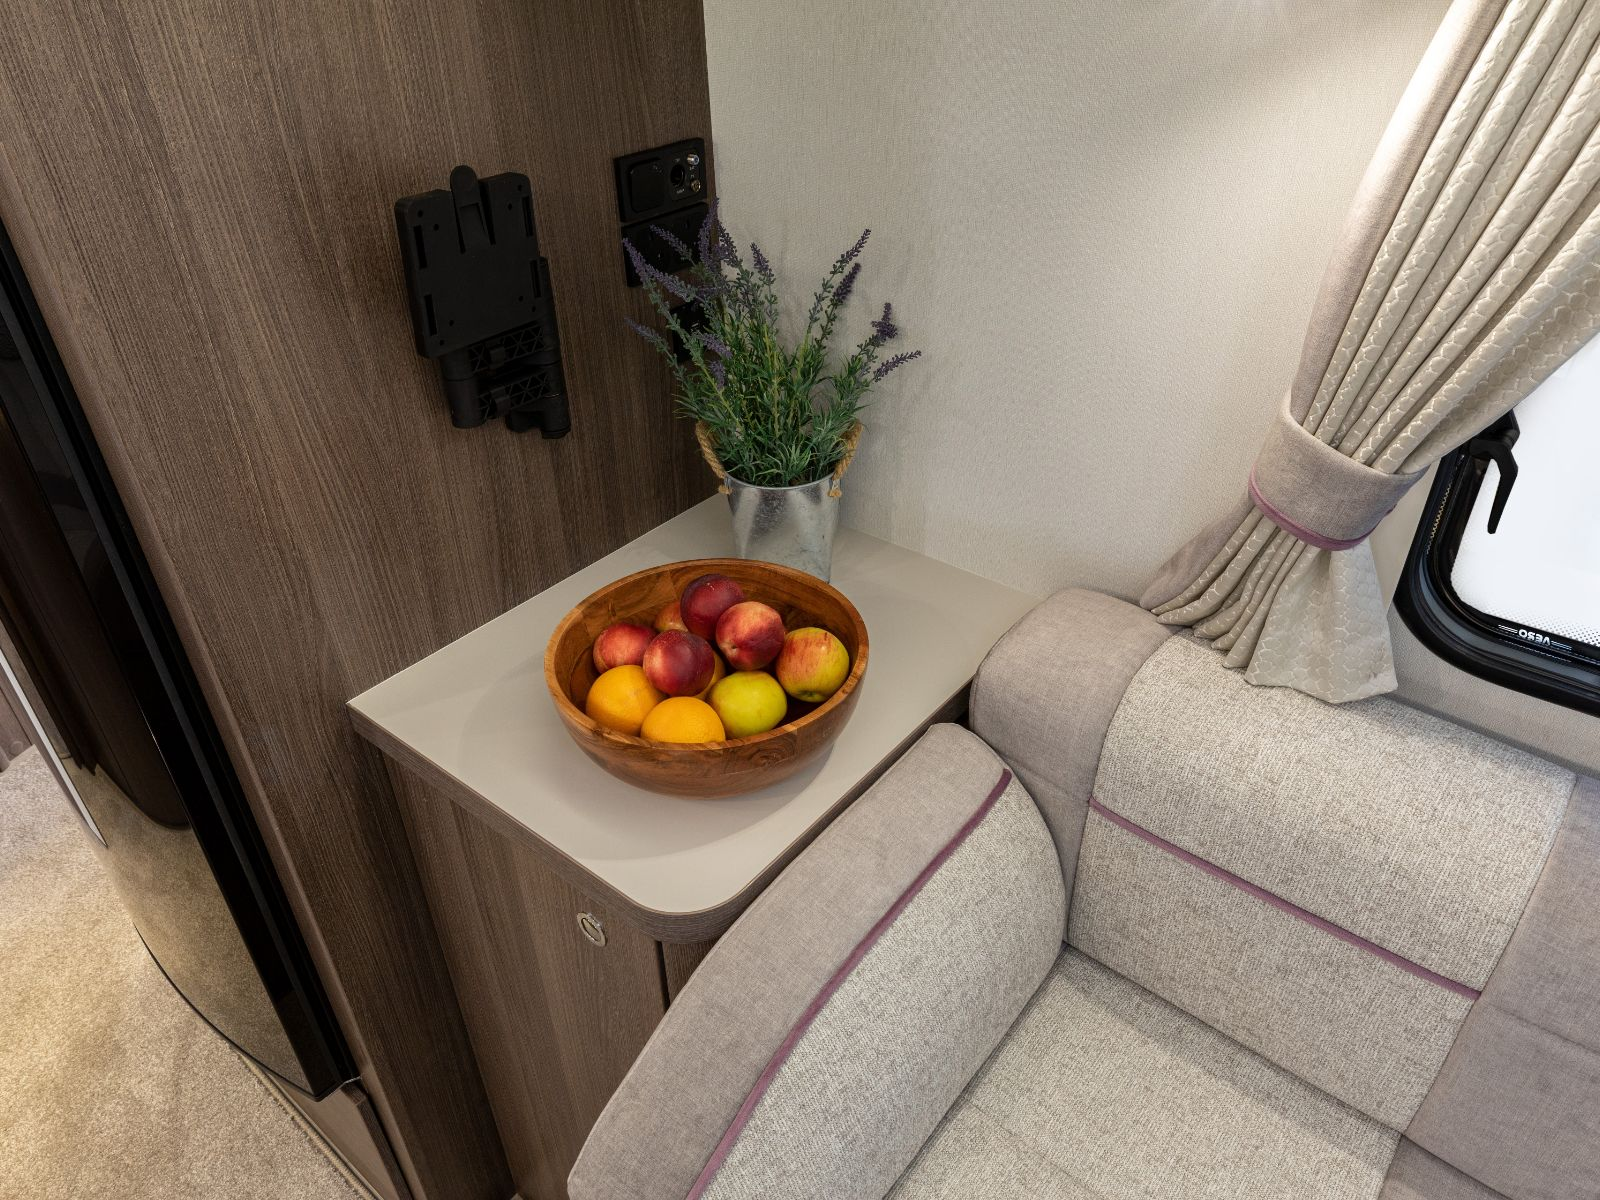 Fruit bowl and lavender plant on side table'